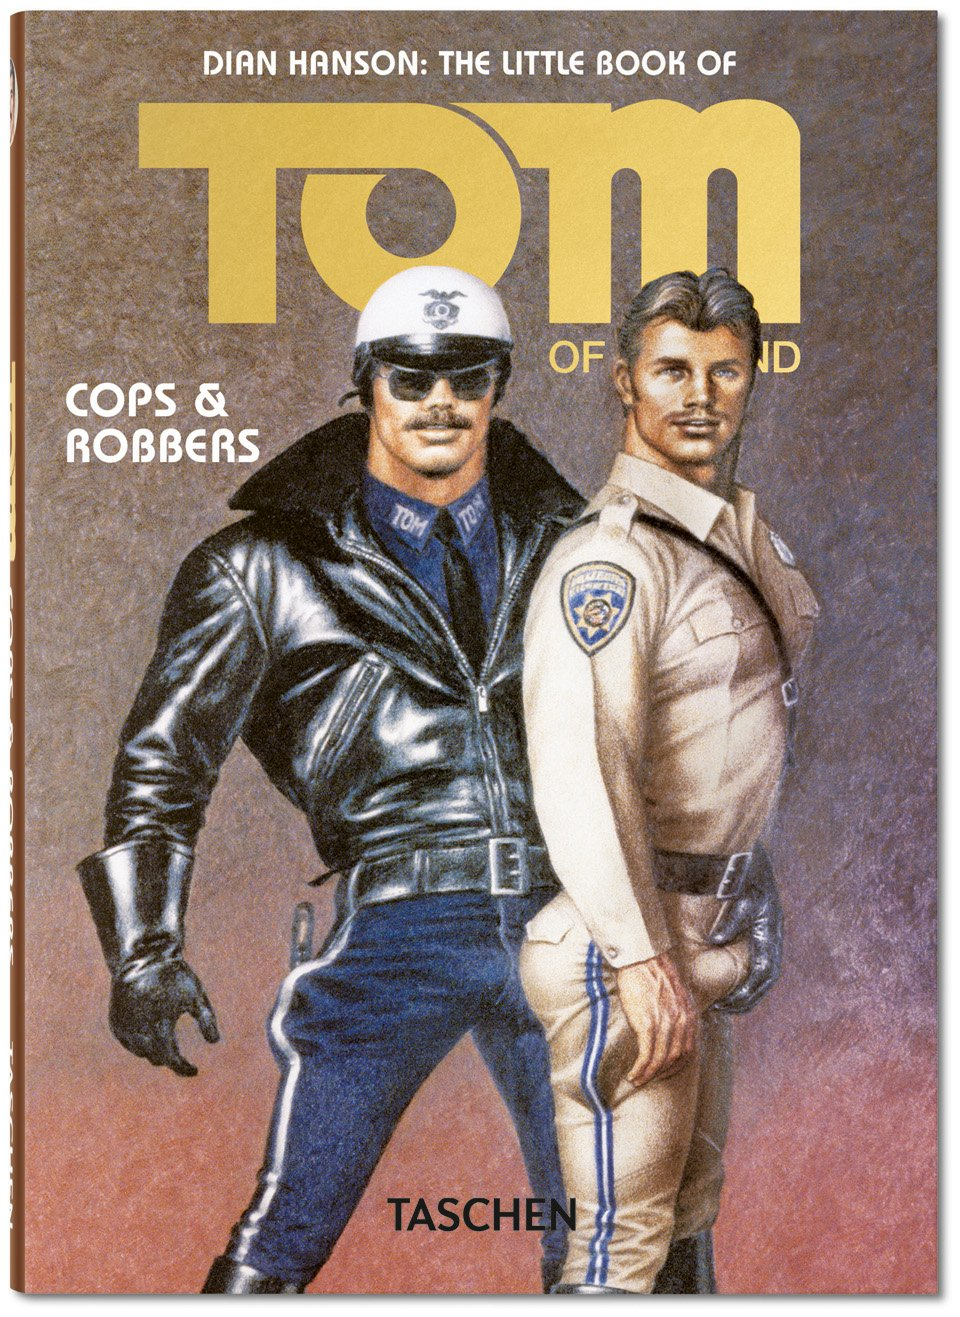 tom_of_finland_cops_robbers_pi_int_3d_48607_1605021623_id_1051915